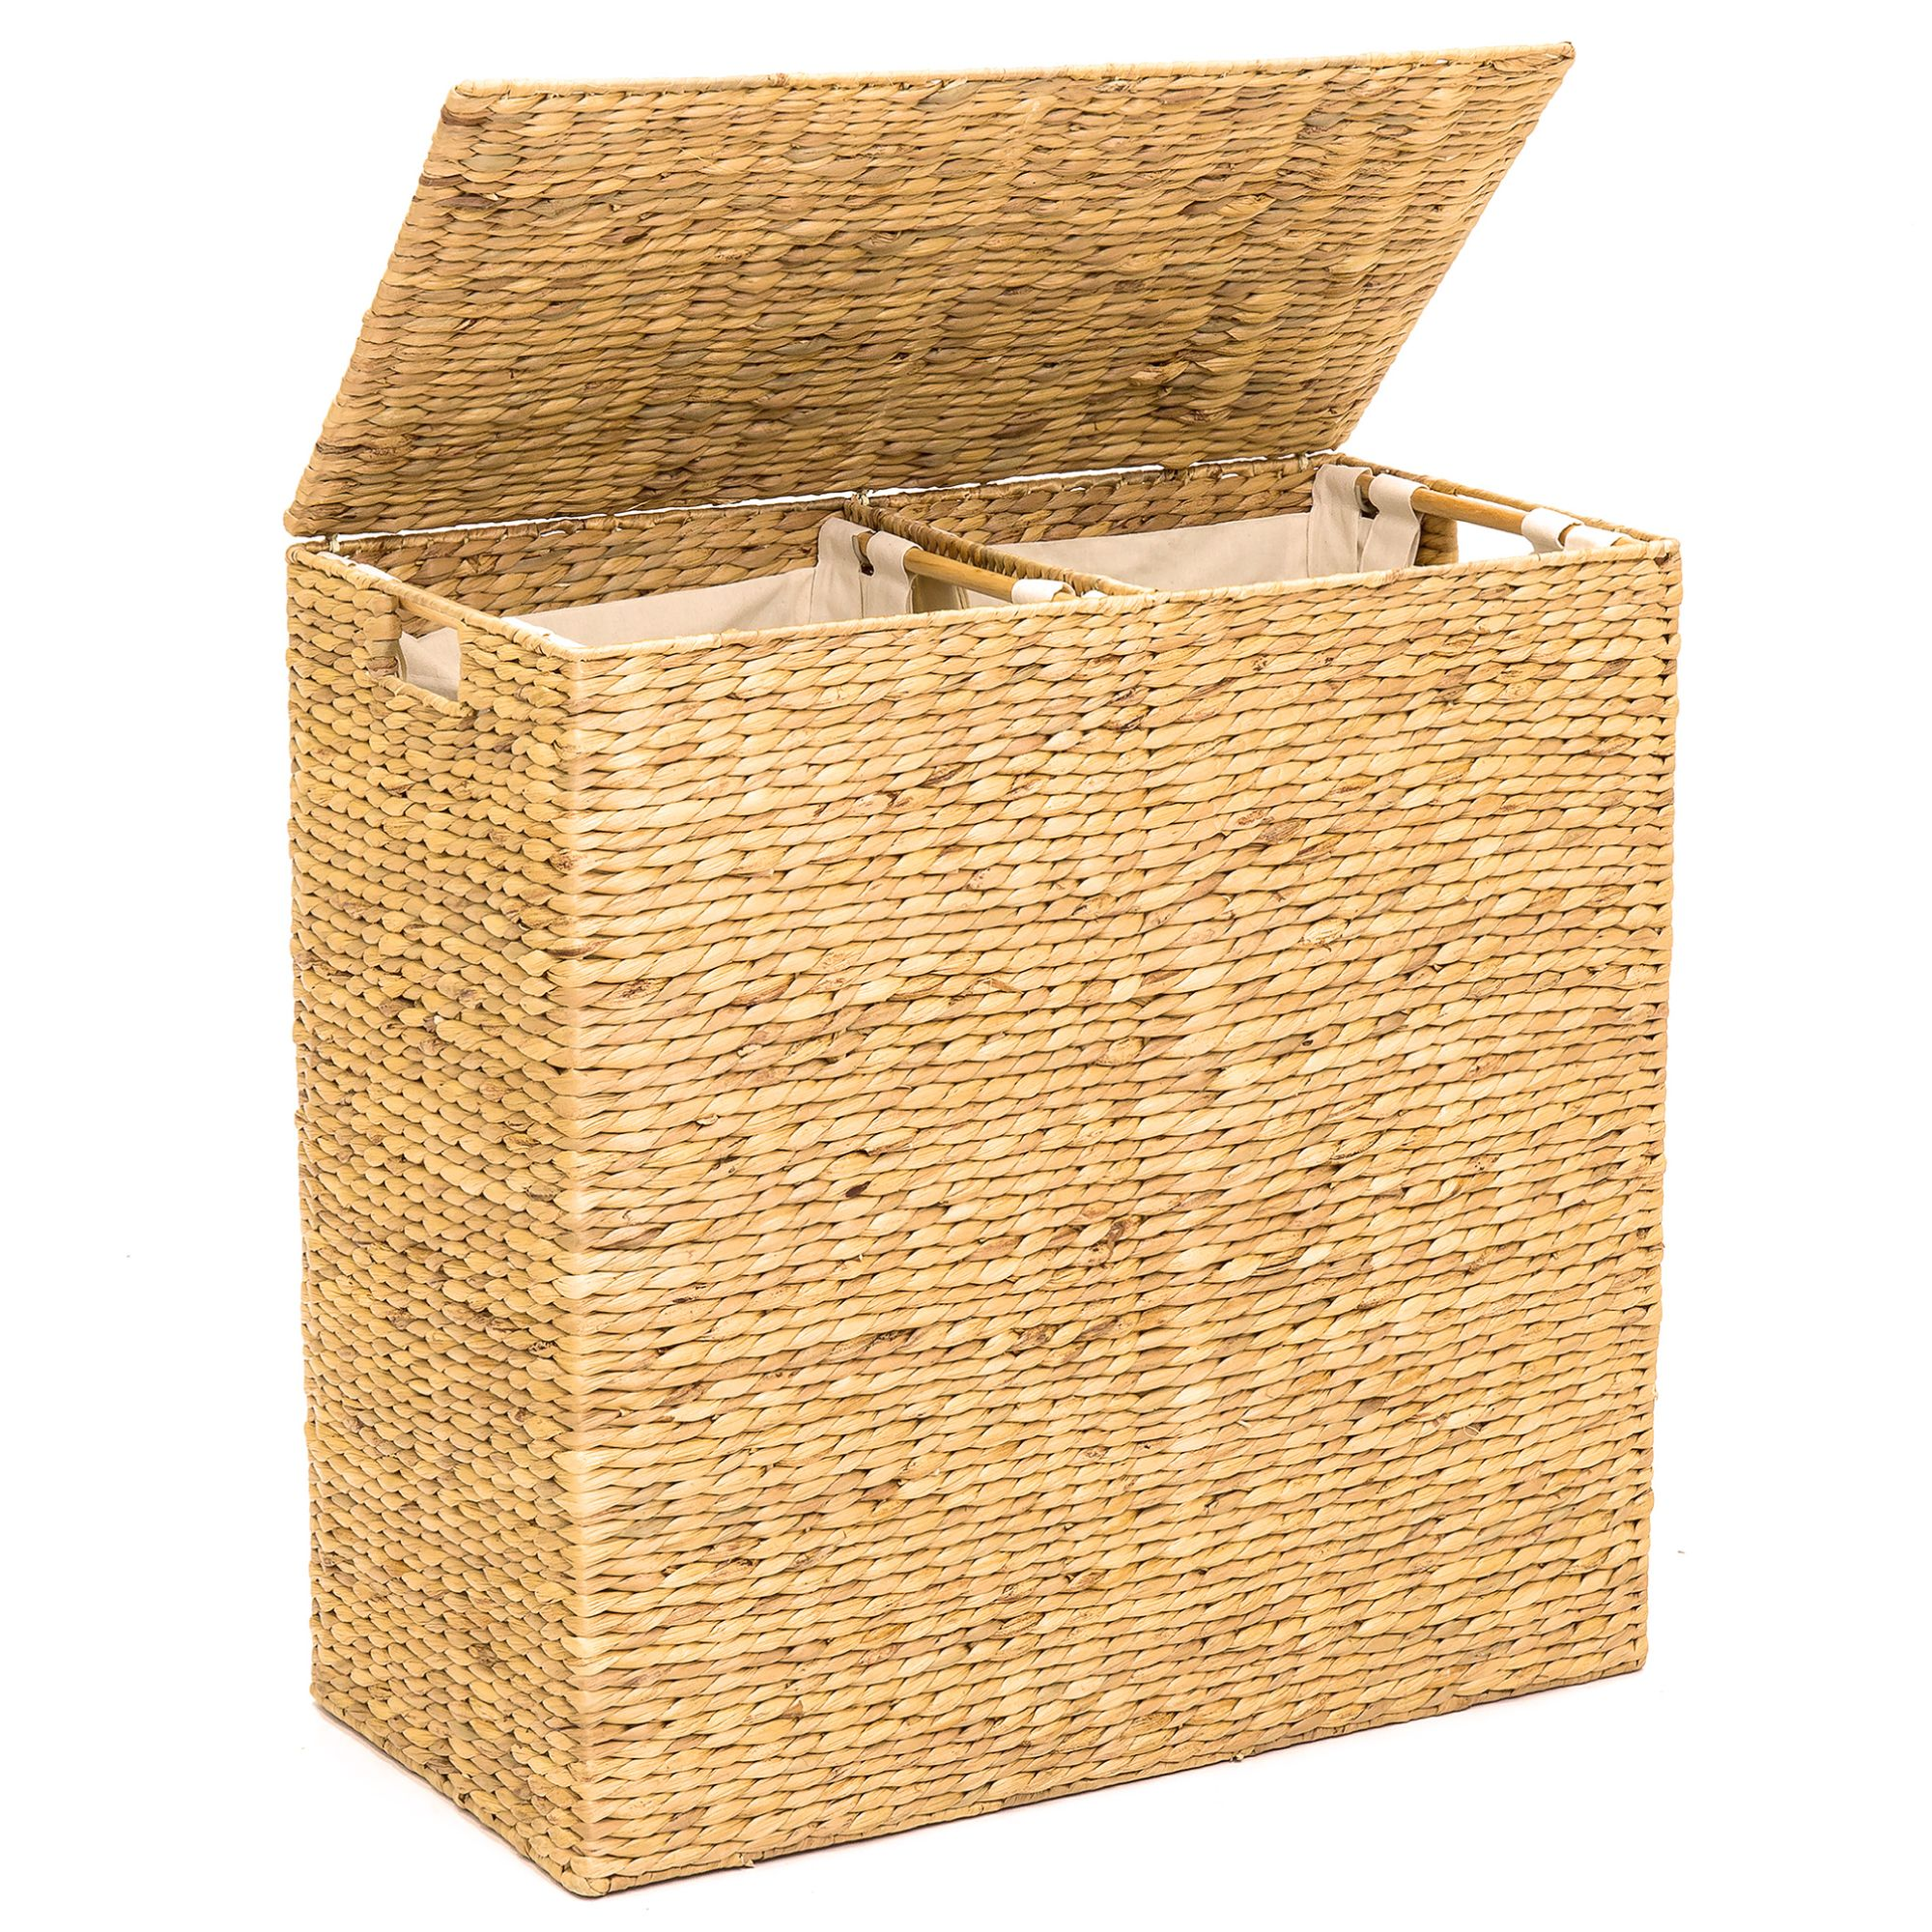 Free 2-day shipping. Buy Best Choice Products Extra Large Natural Woven Water Hyacinth Double Laundry Hamper Basket w/ 2 Liners, Handles-Natural at Walmart.com